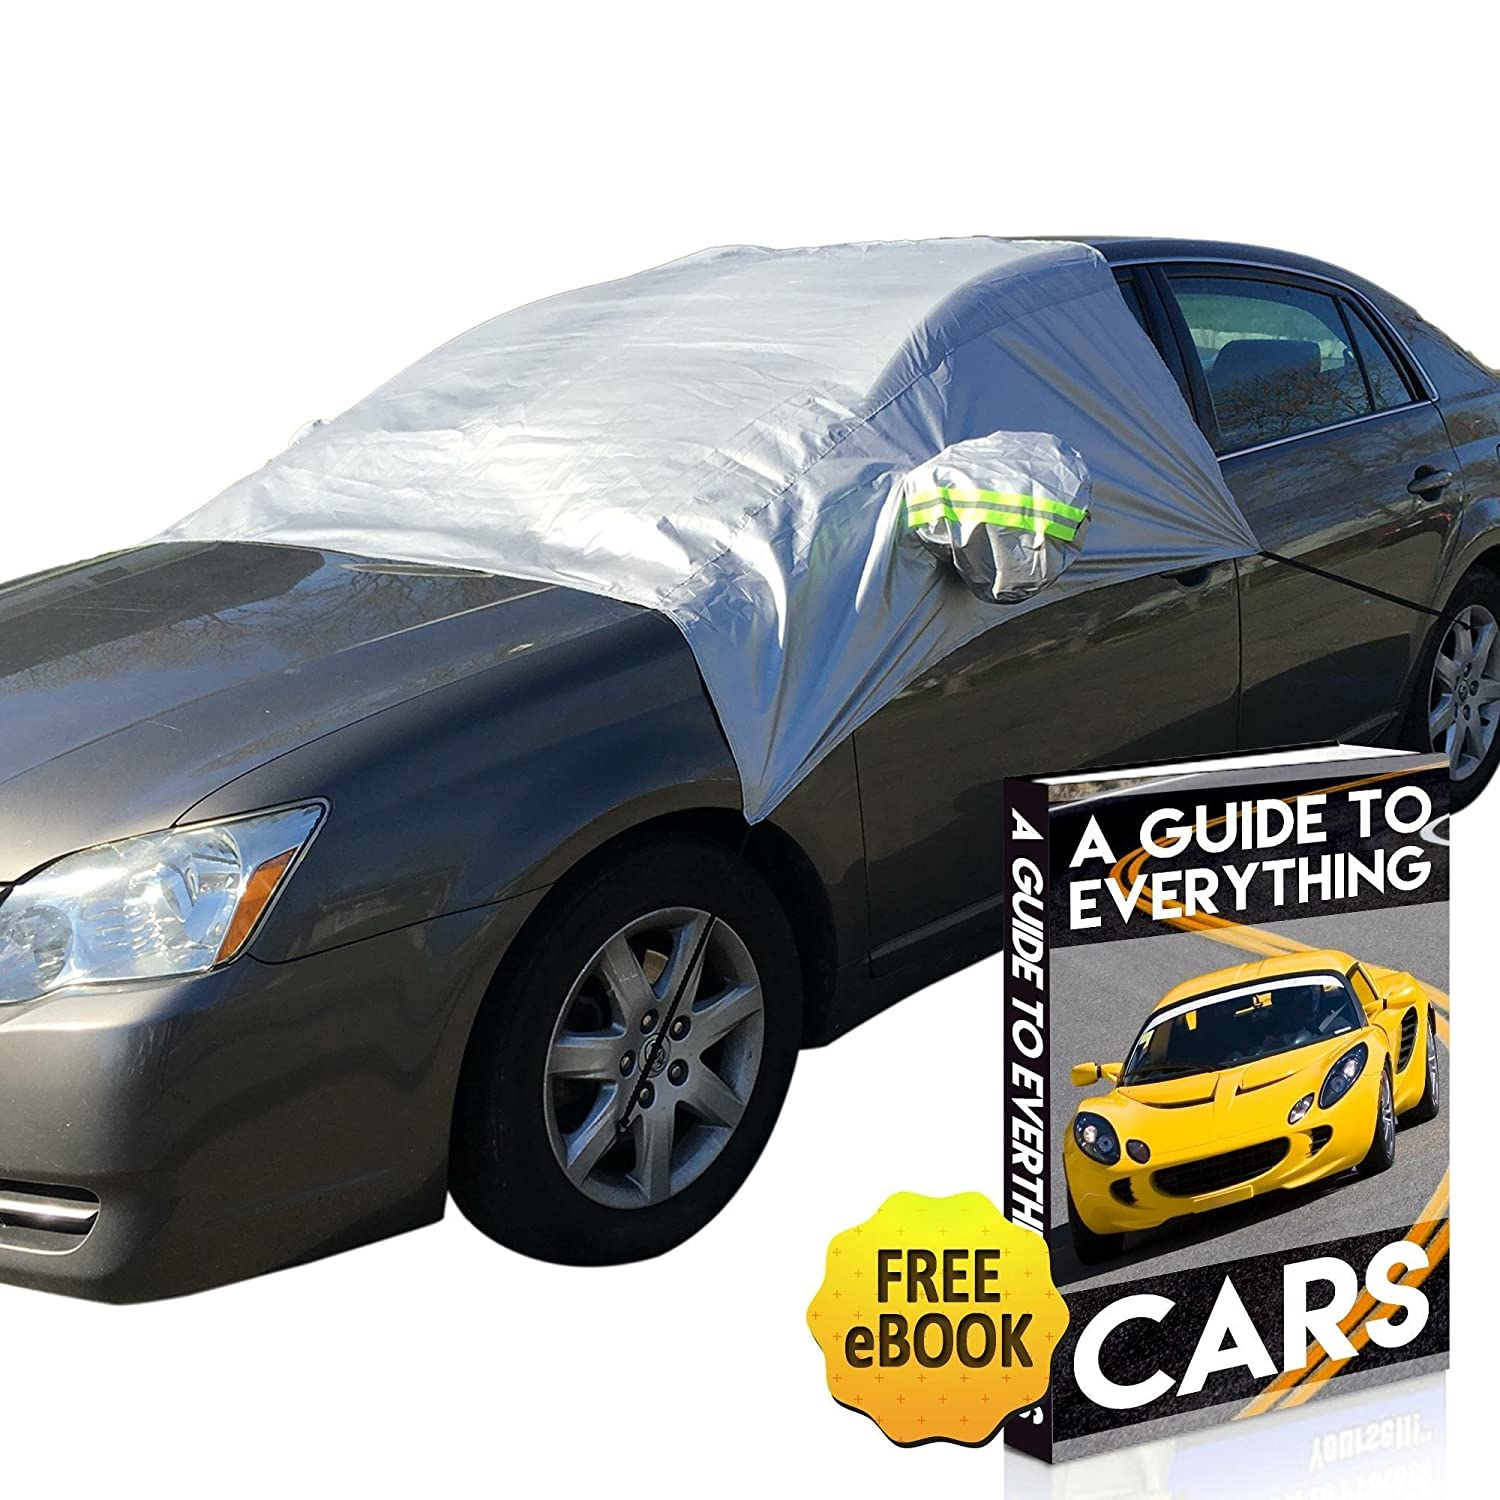 Snow Protection Windshield Cover For  Car: Automotive